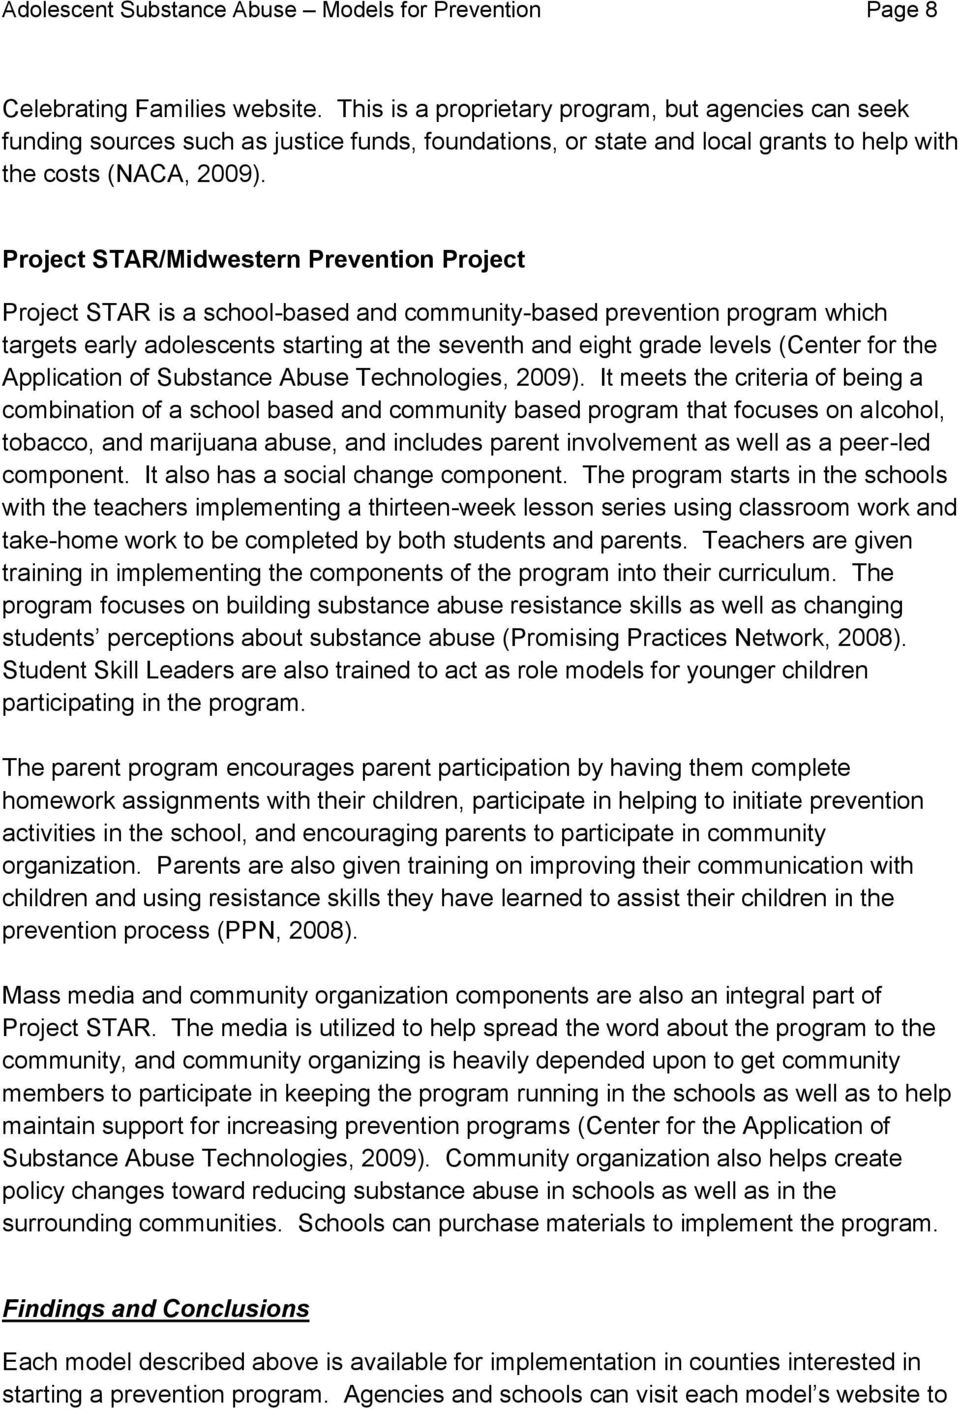 Project STAR/Midwestern Prevention Project Project STAR is a school-based and community-based prevention program which targets early adolescents starting at the seventh and eight grade levels (Center